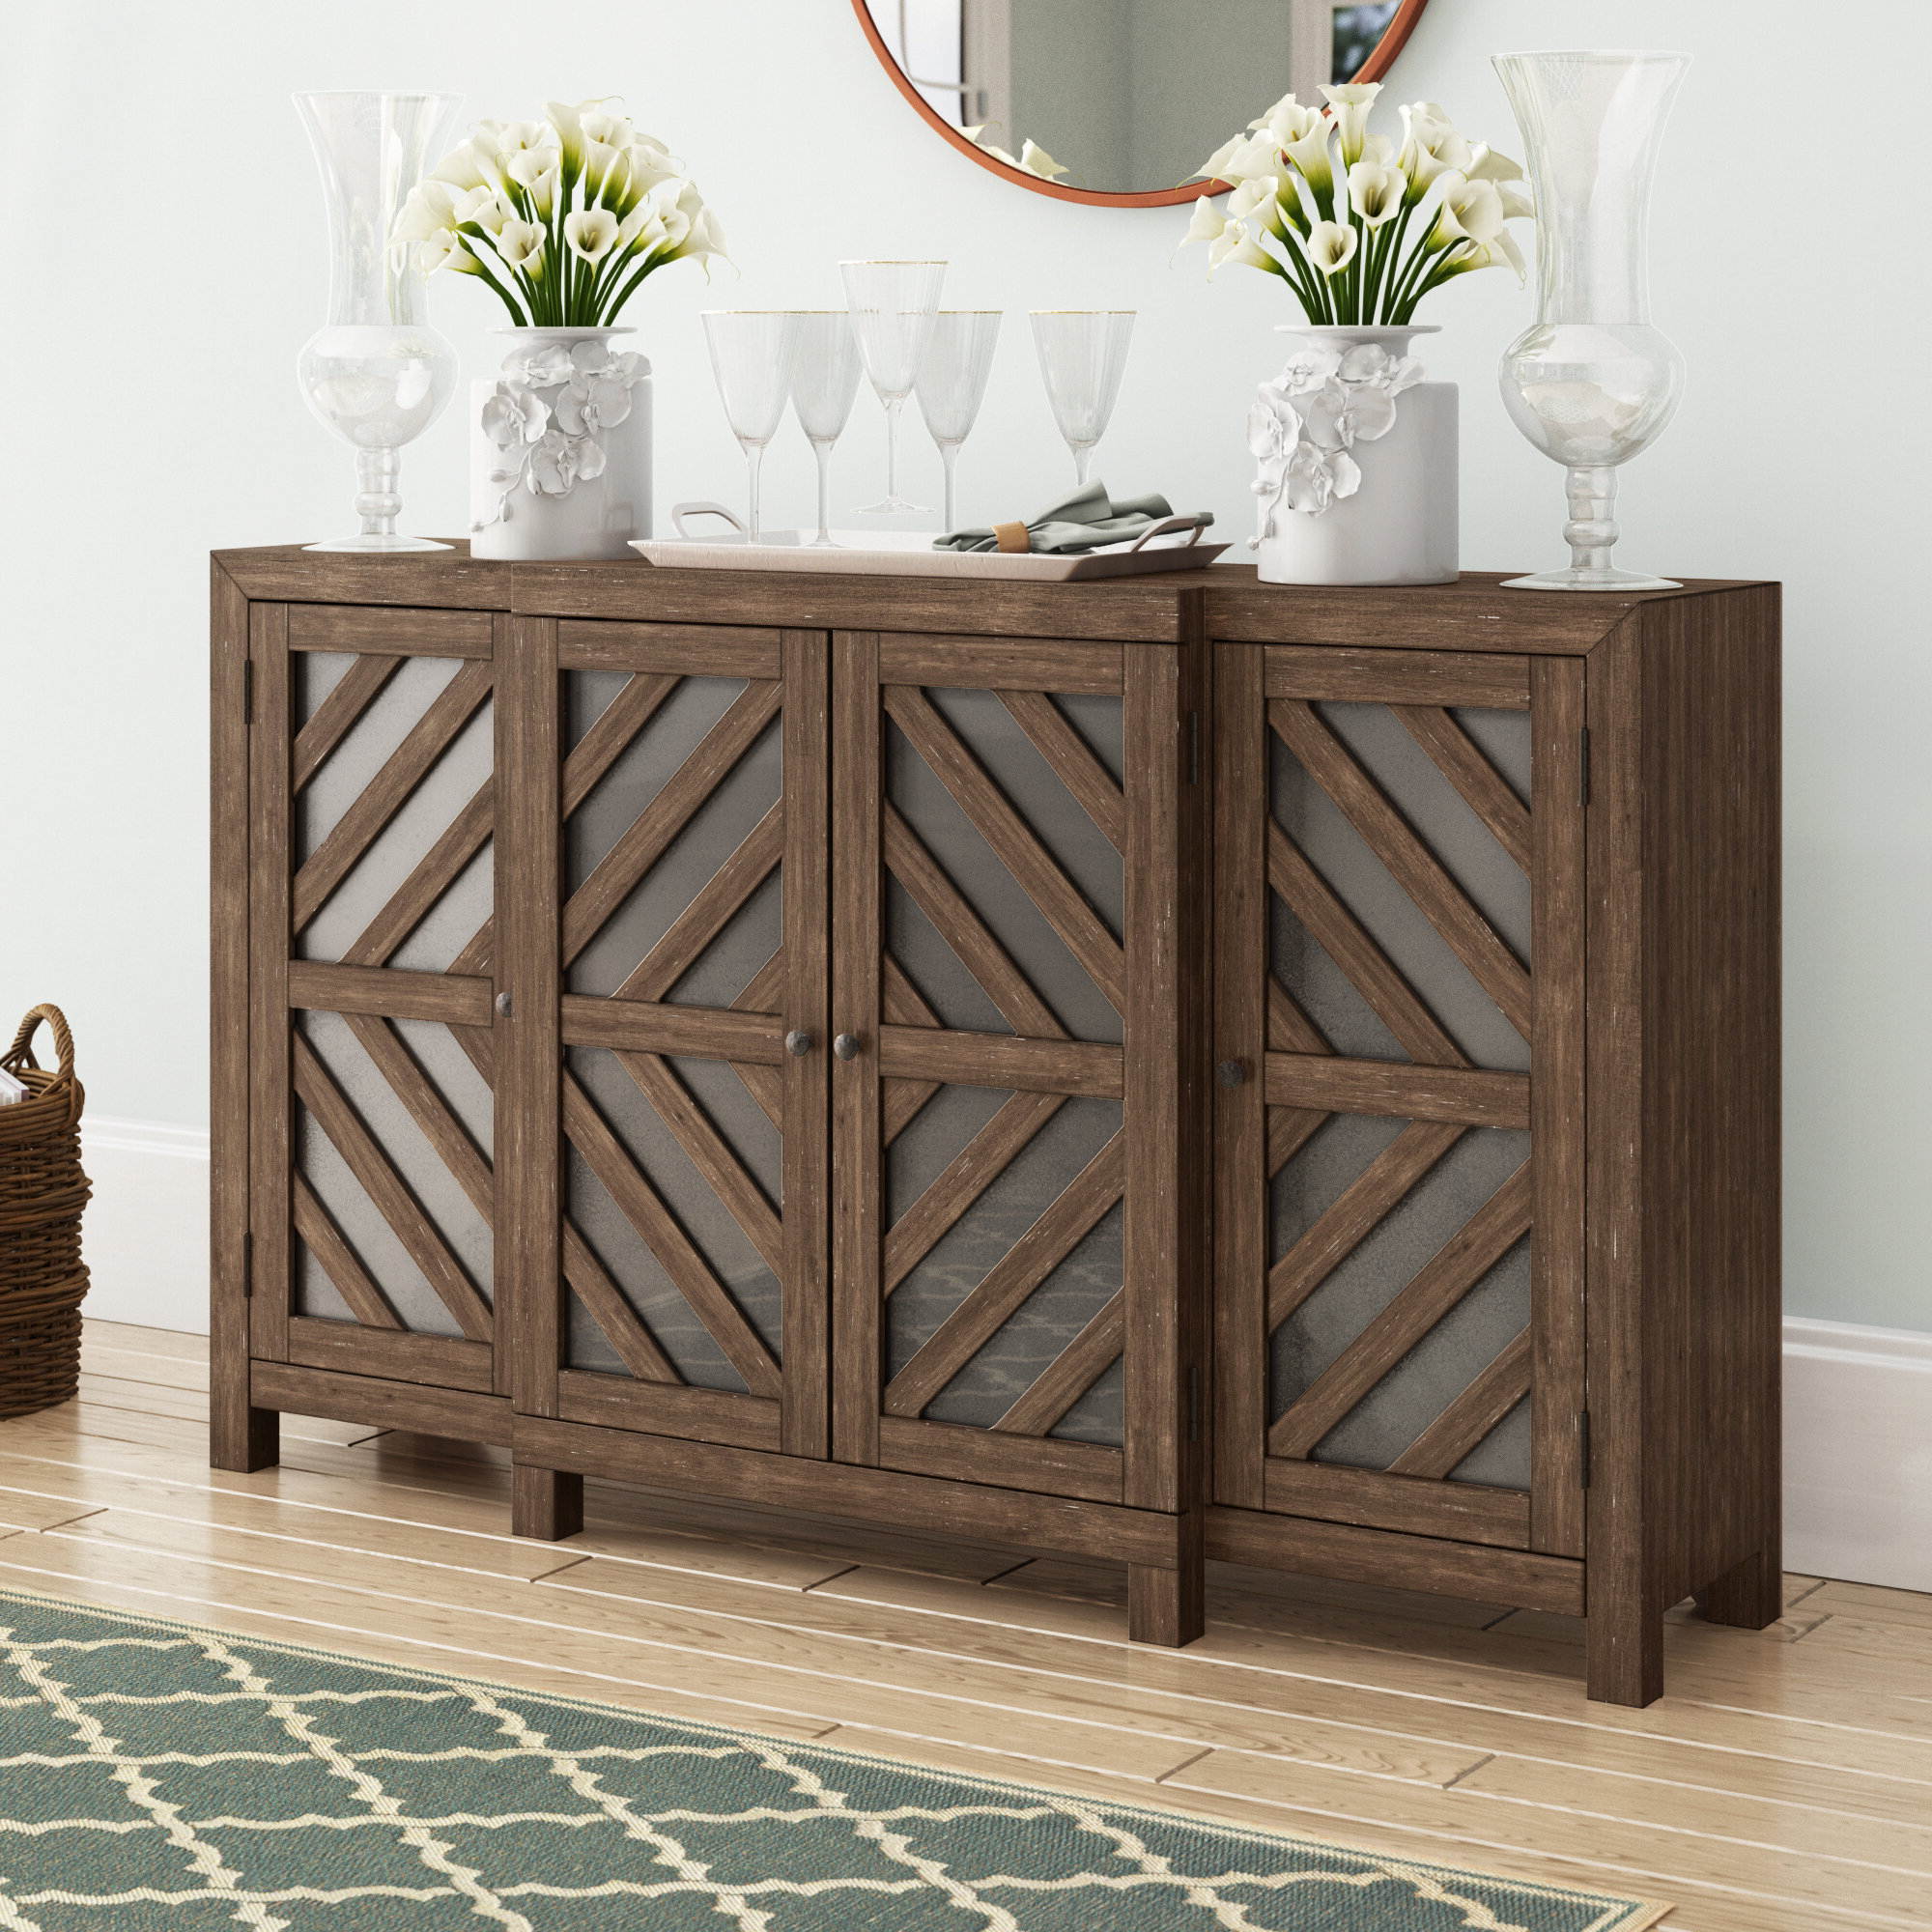 Wayfair Intended For Popular Elyza Credenzas (View 14 of 20)